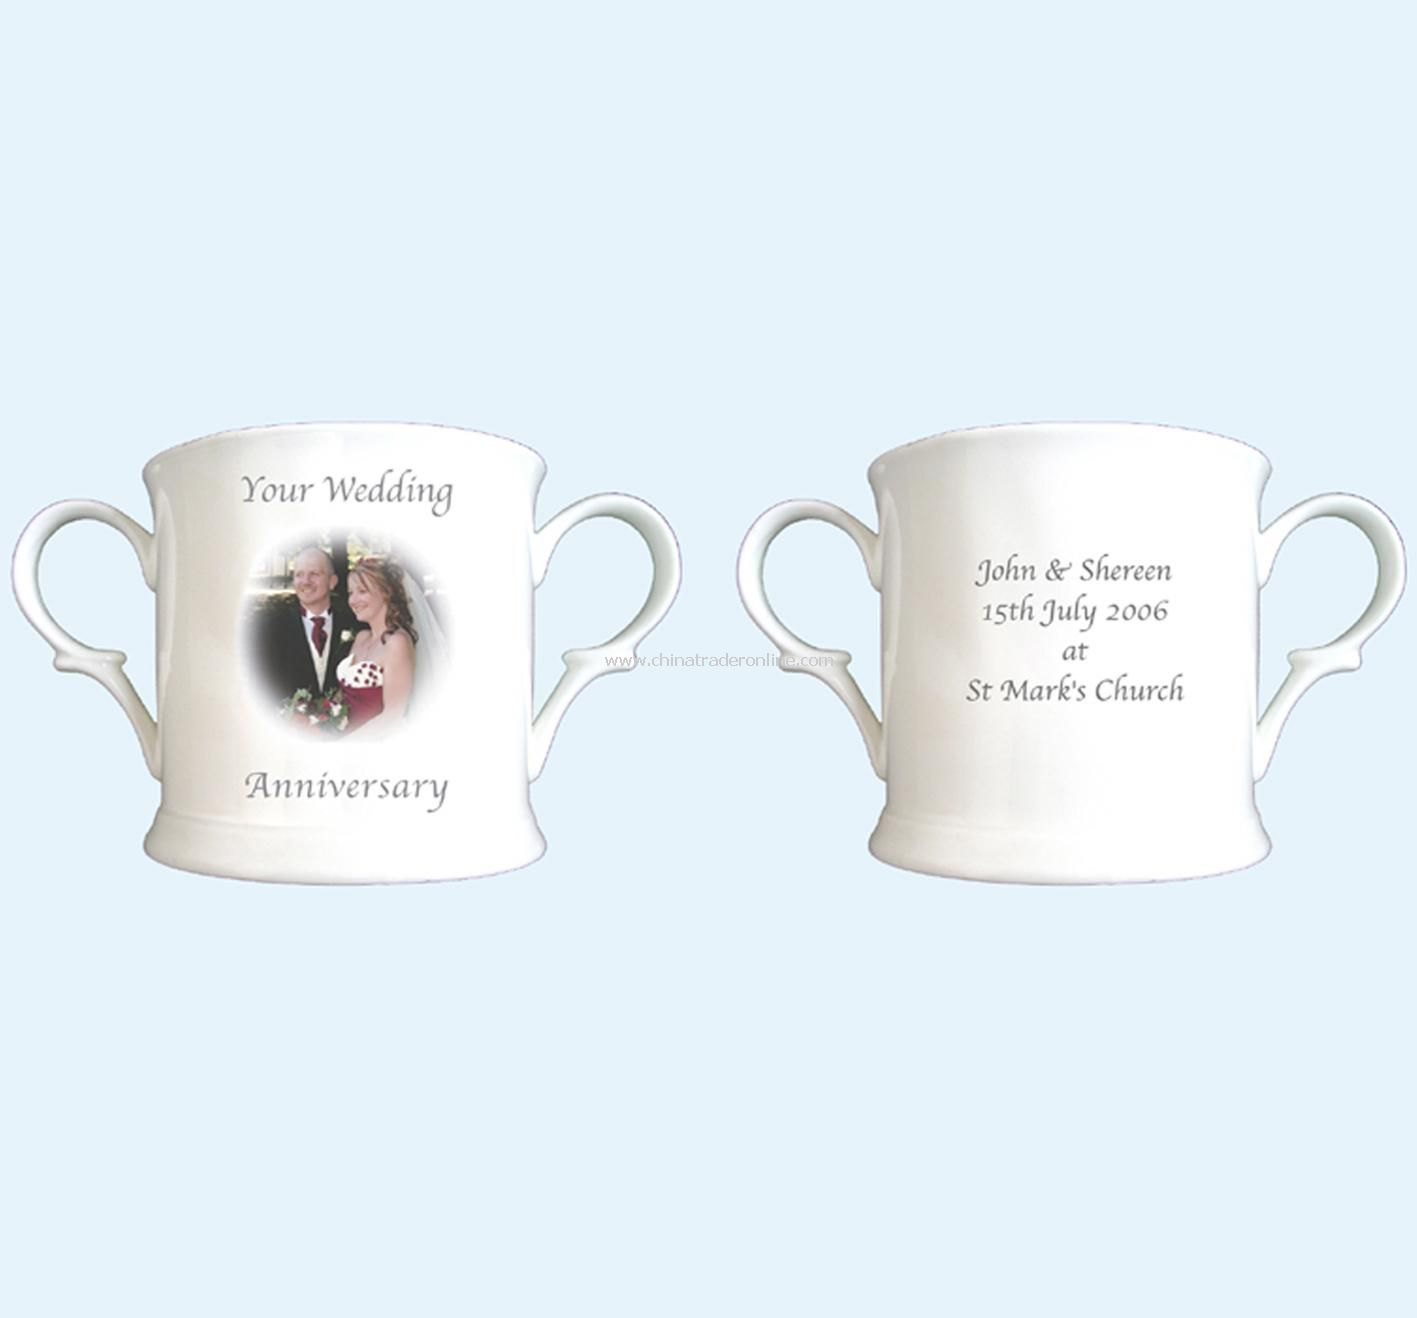 Photo Wedding Loving Cup from China